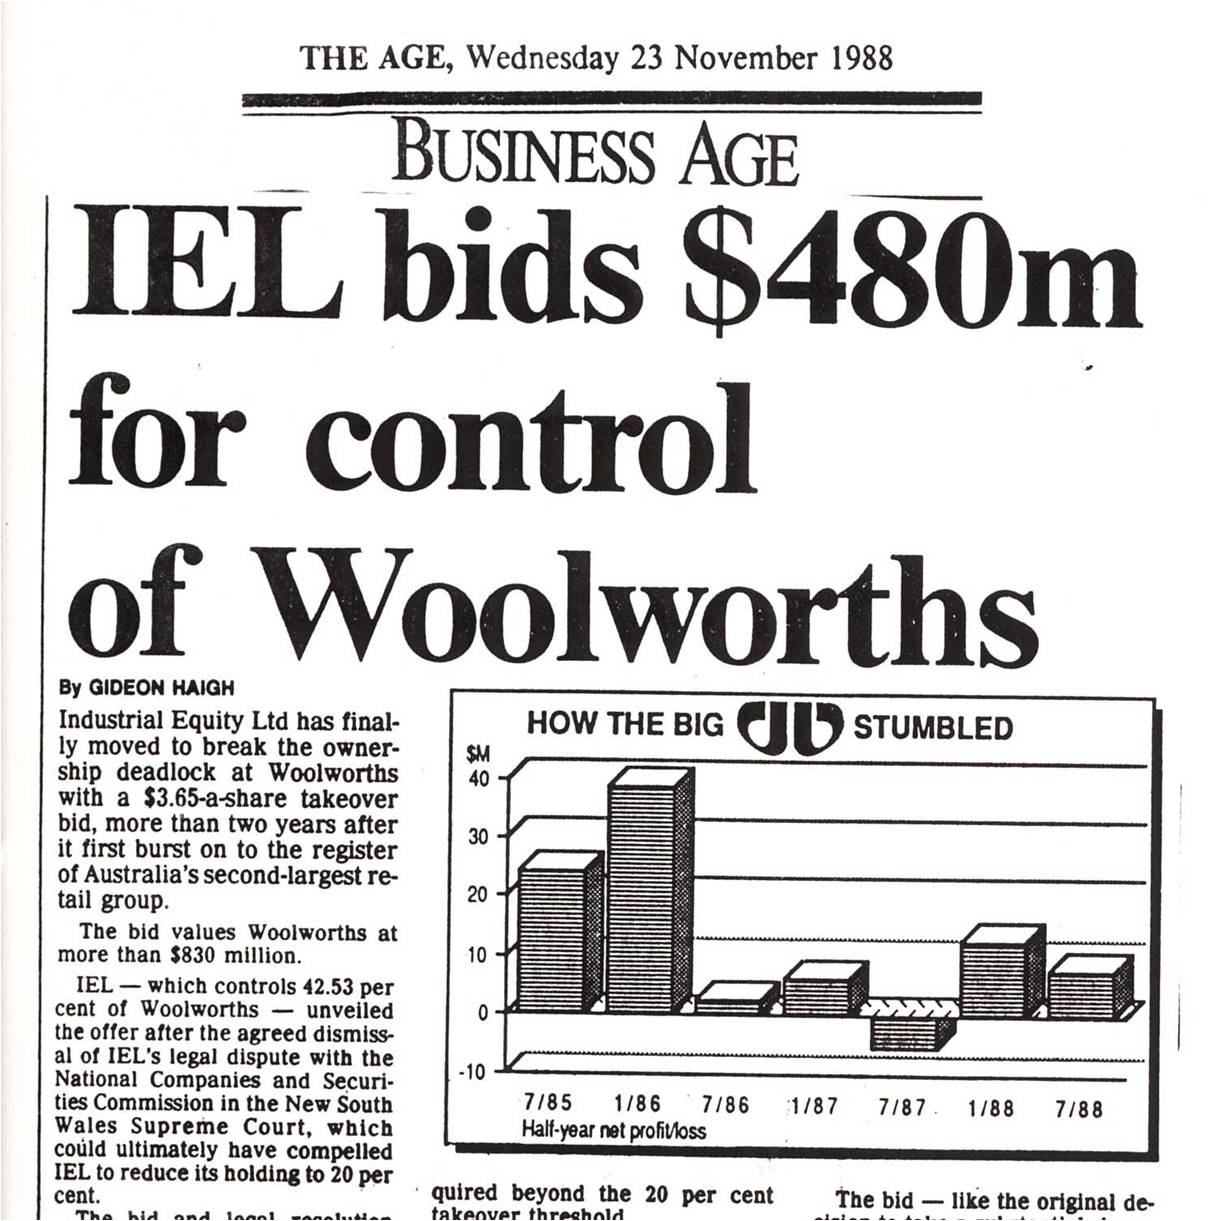 1989: Woolworths taken over by IEL